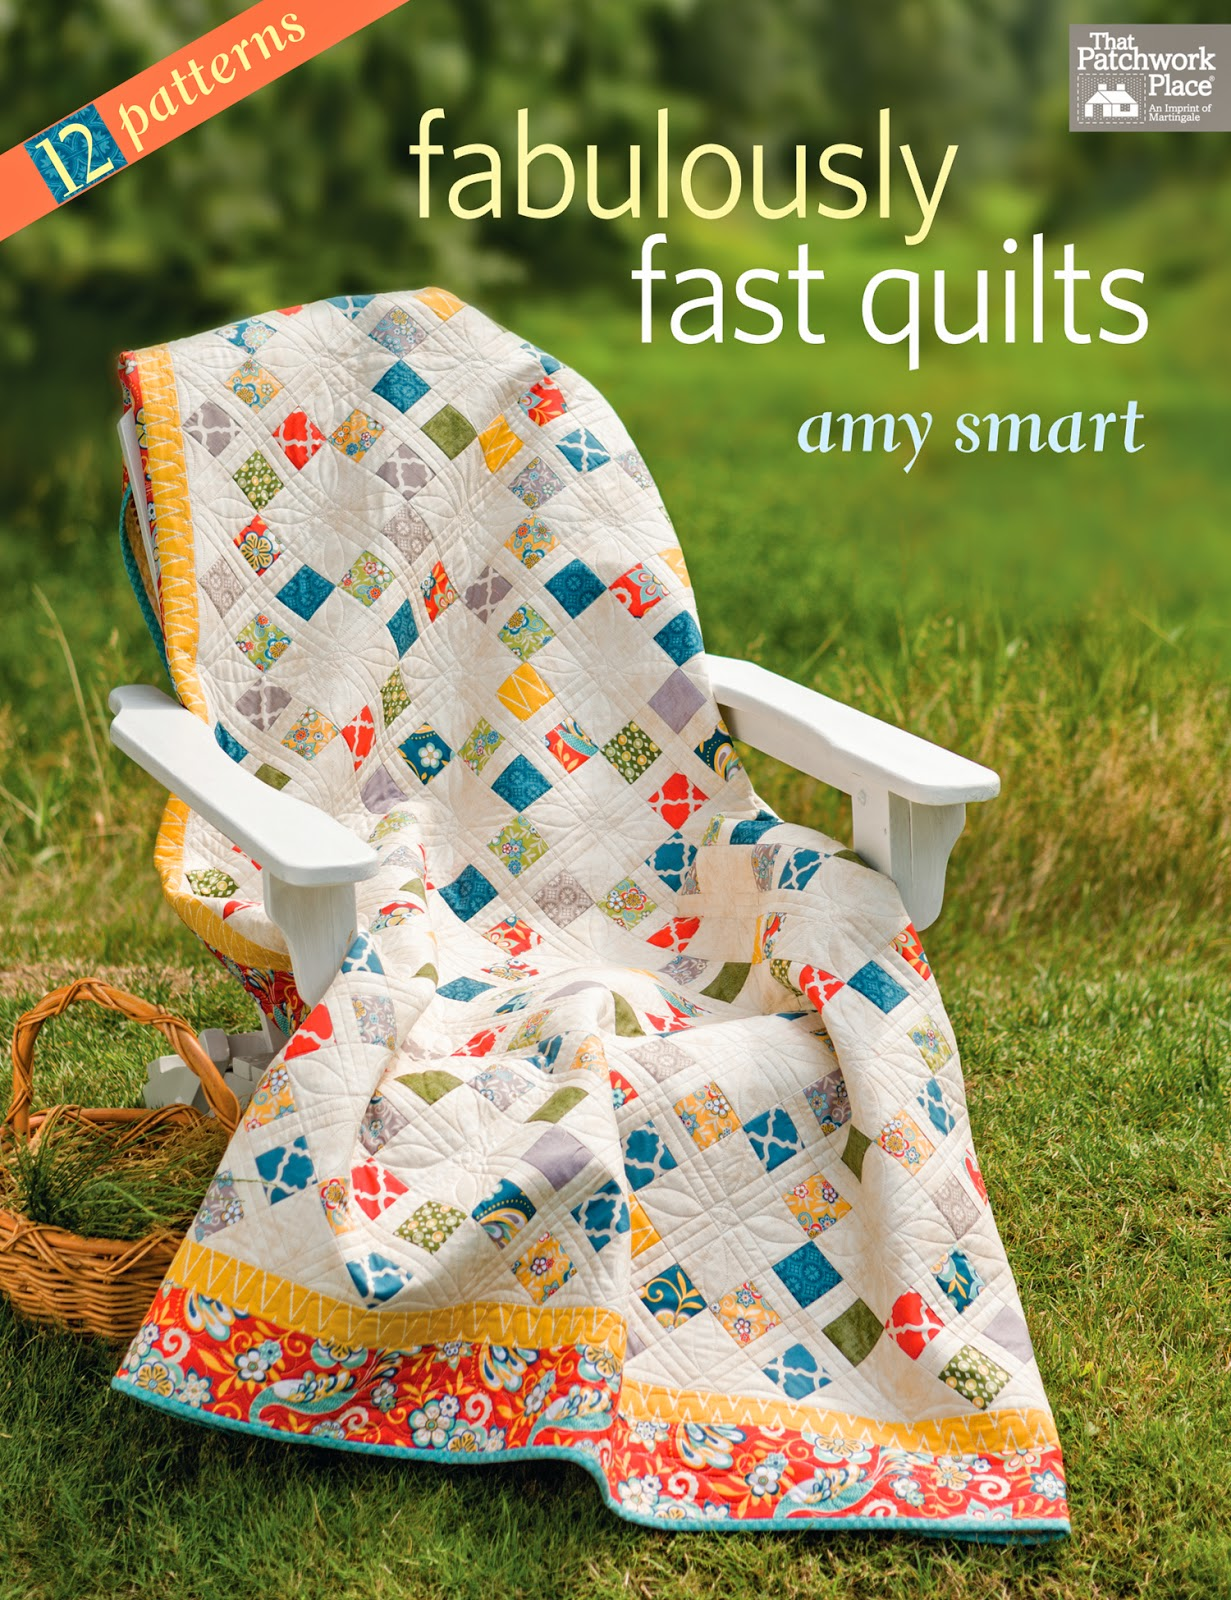 Fabulously Fast Quilts by Amy Smart book cover